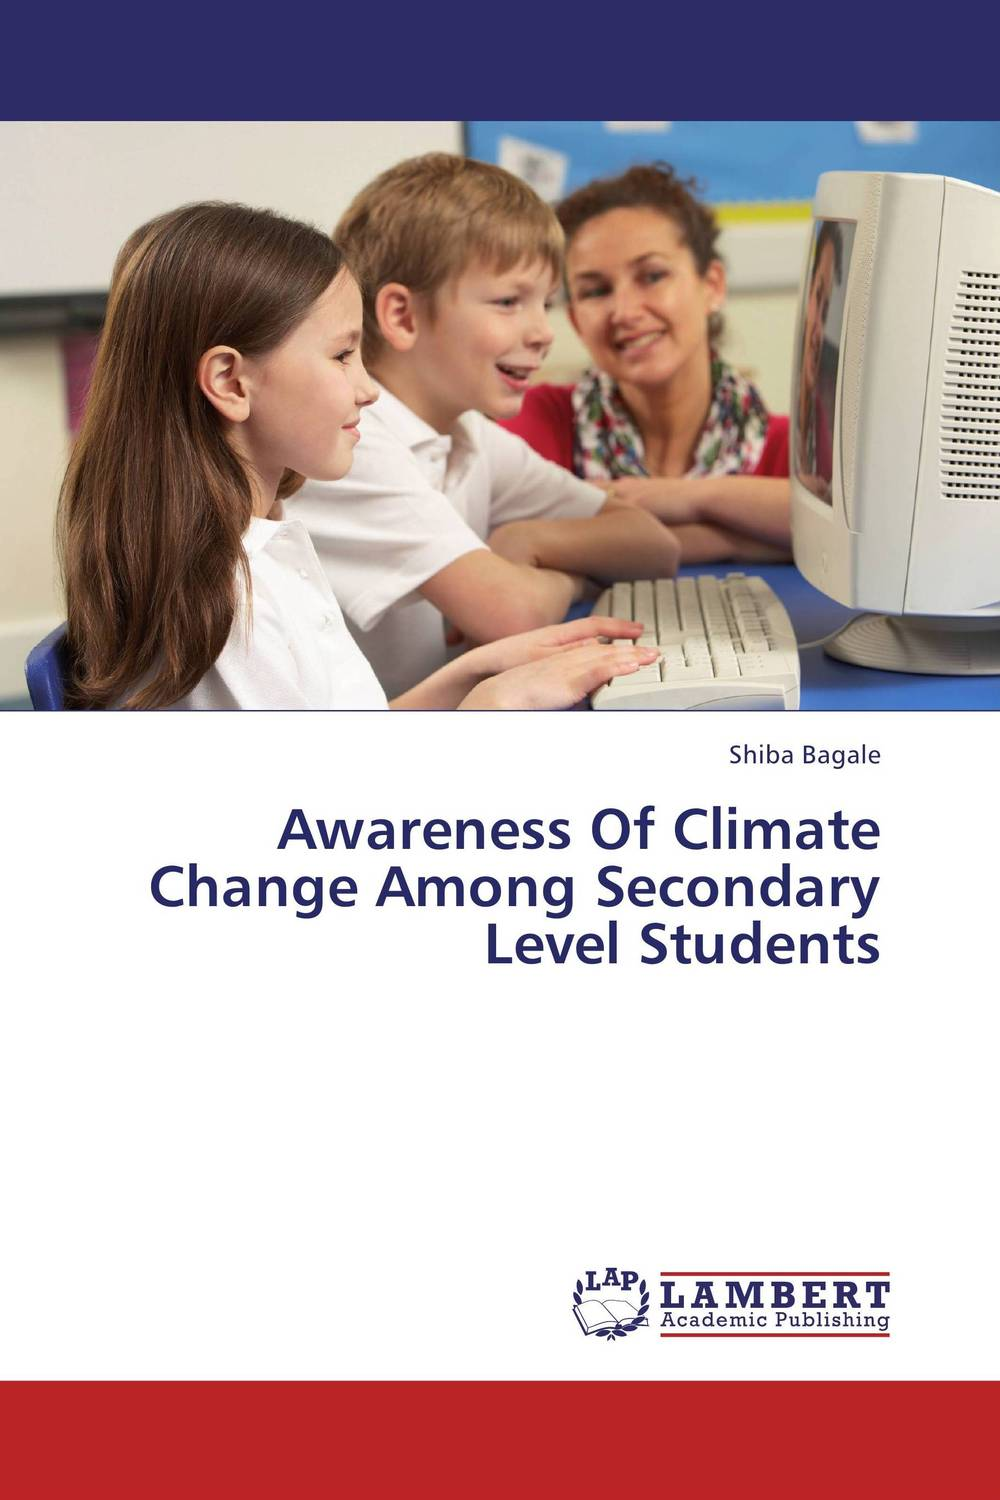 Awareness Of Climate Change Among Secondary Level Students spirituality and climate change